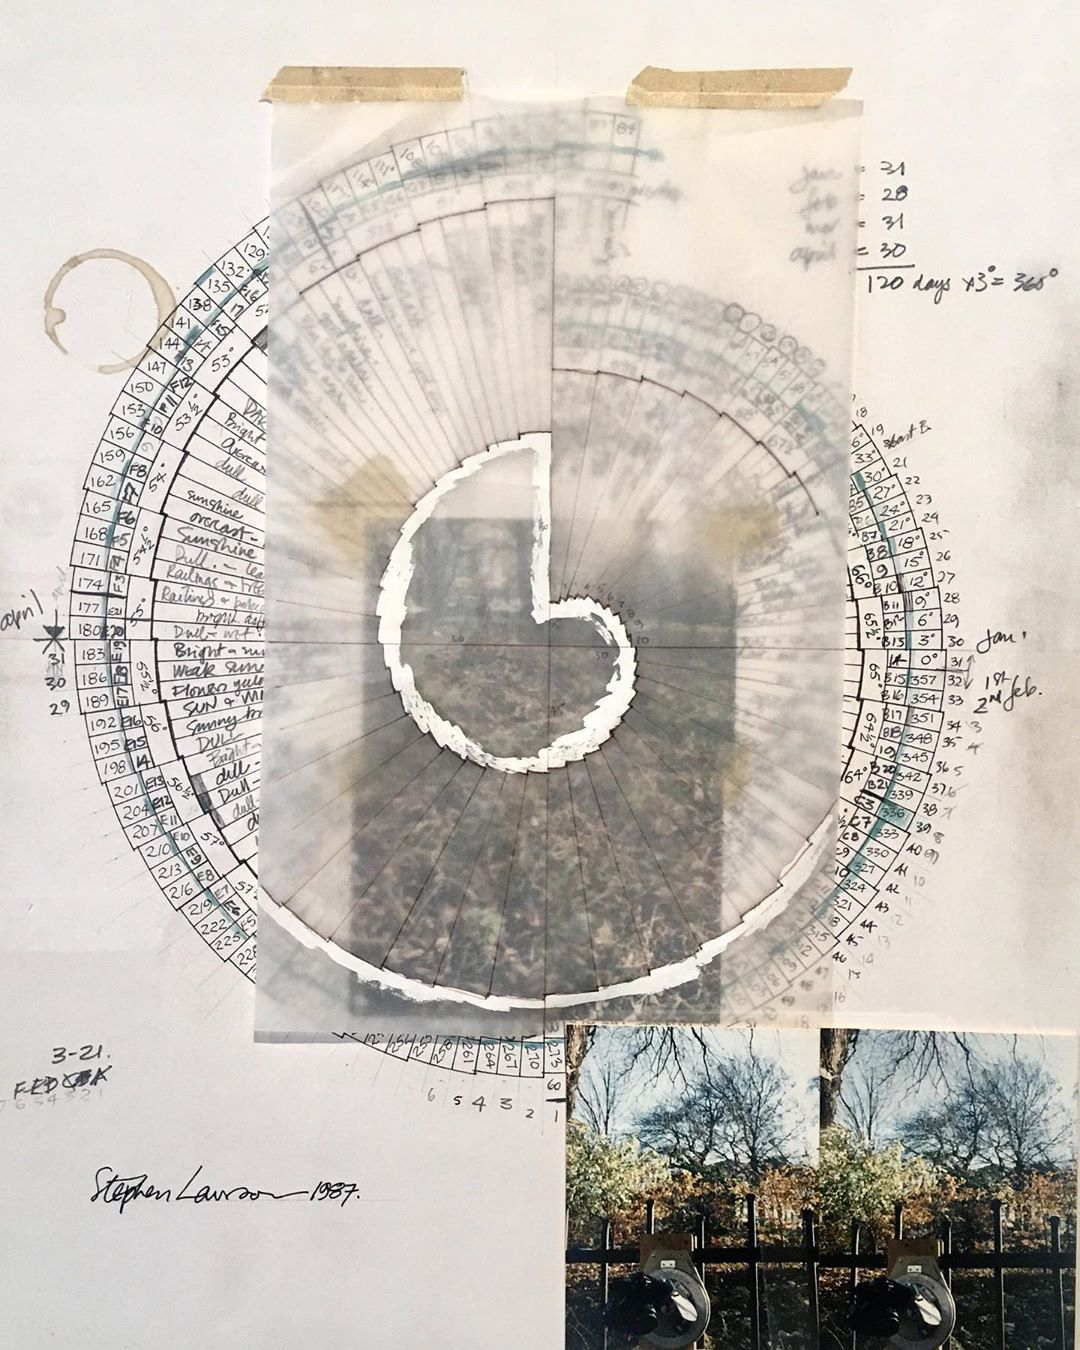 Stephen Lawson – 'Worksheet and Study used in making the photograph 'The Unfolding of Spring' at Royal Circus Gardens, Edinburgh.  Part of 'Time of Mind' at @gradientprojects through August 11.